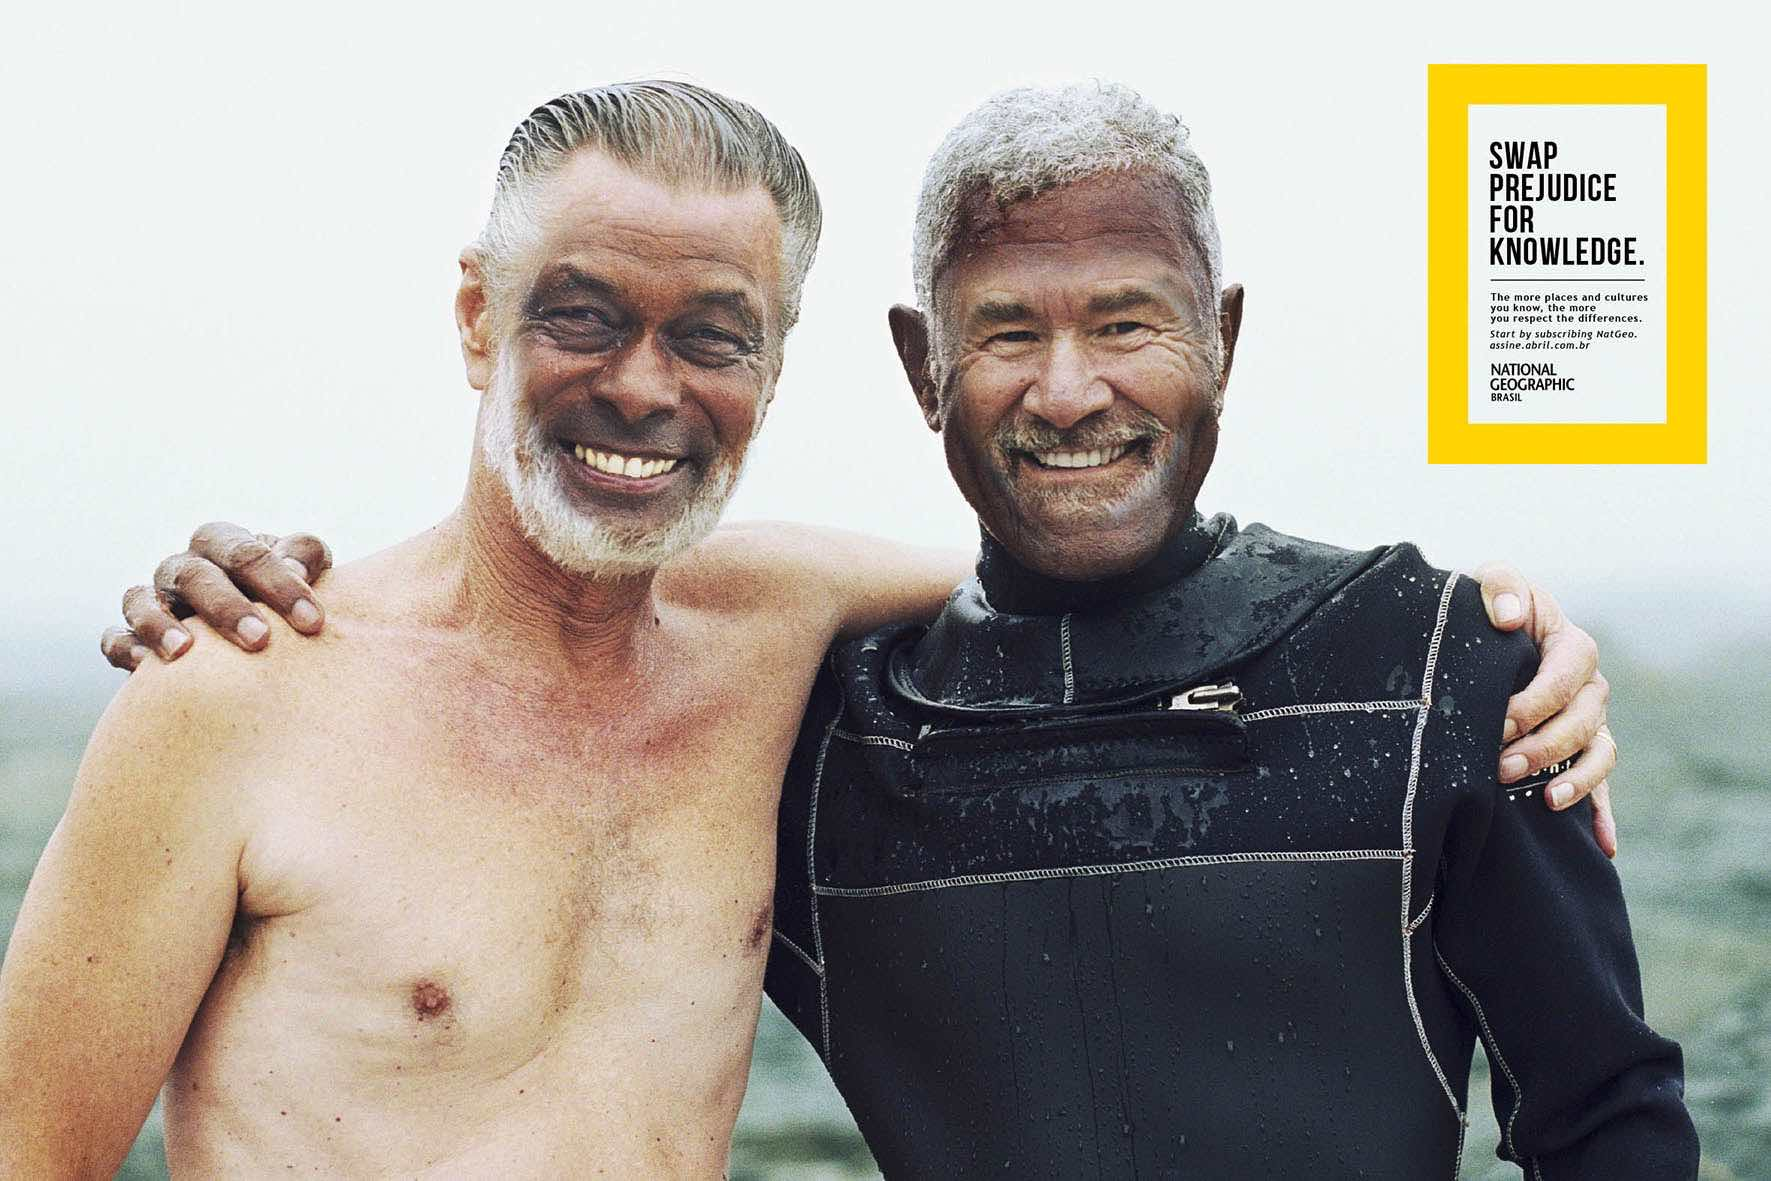 National-Geographic-Face-Swap-Ad-Campaign-cotw-3